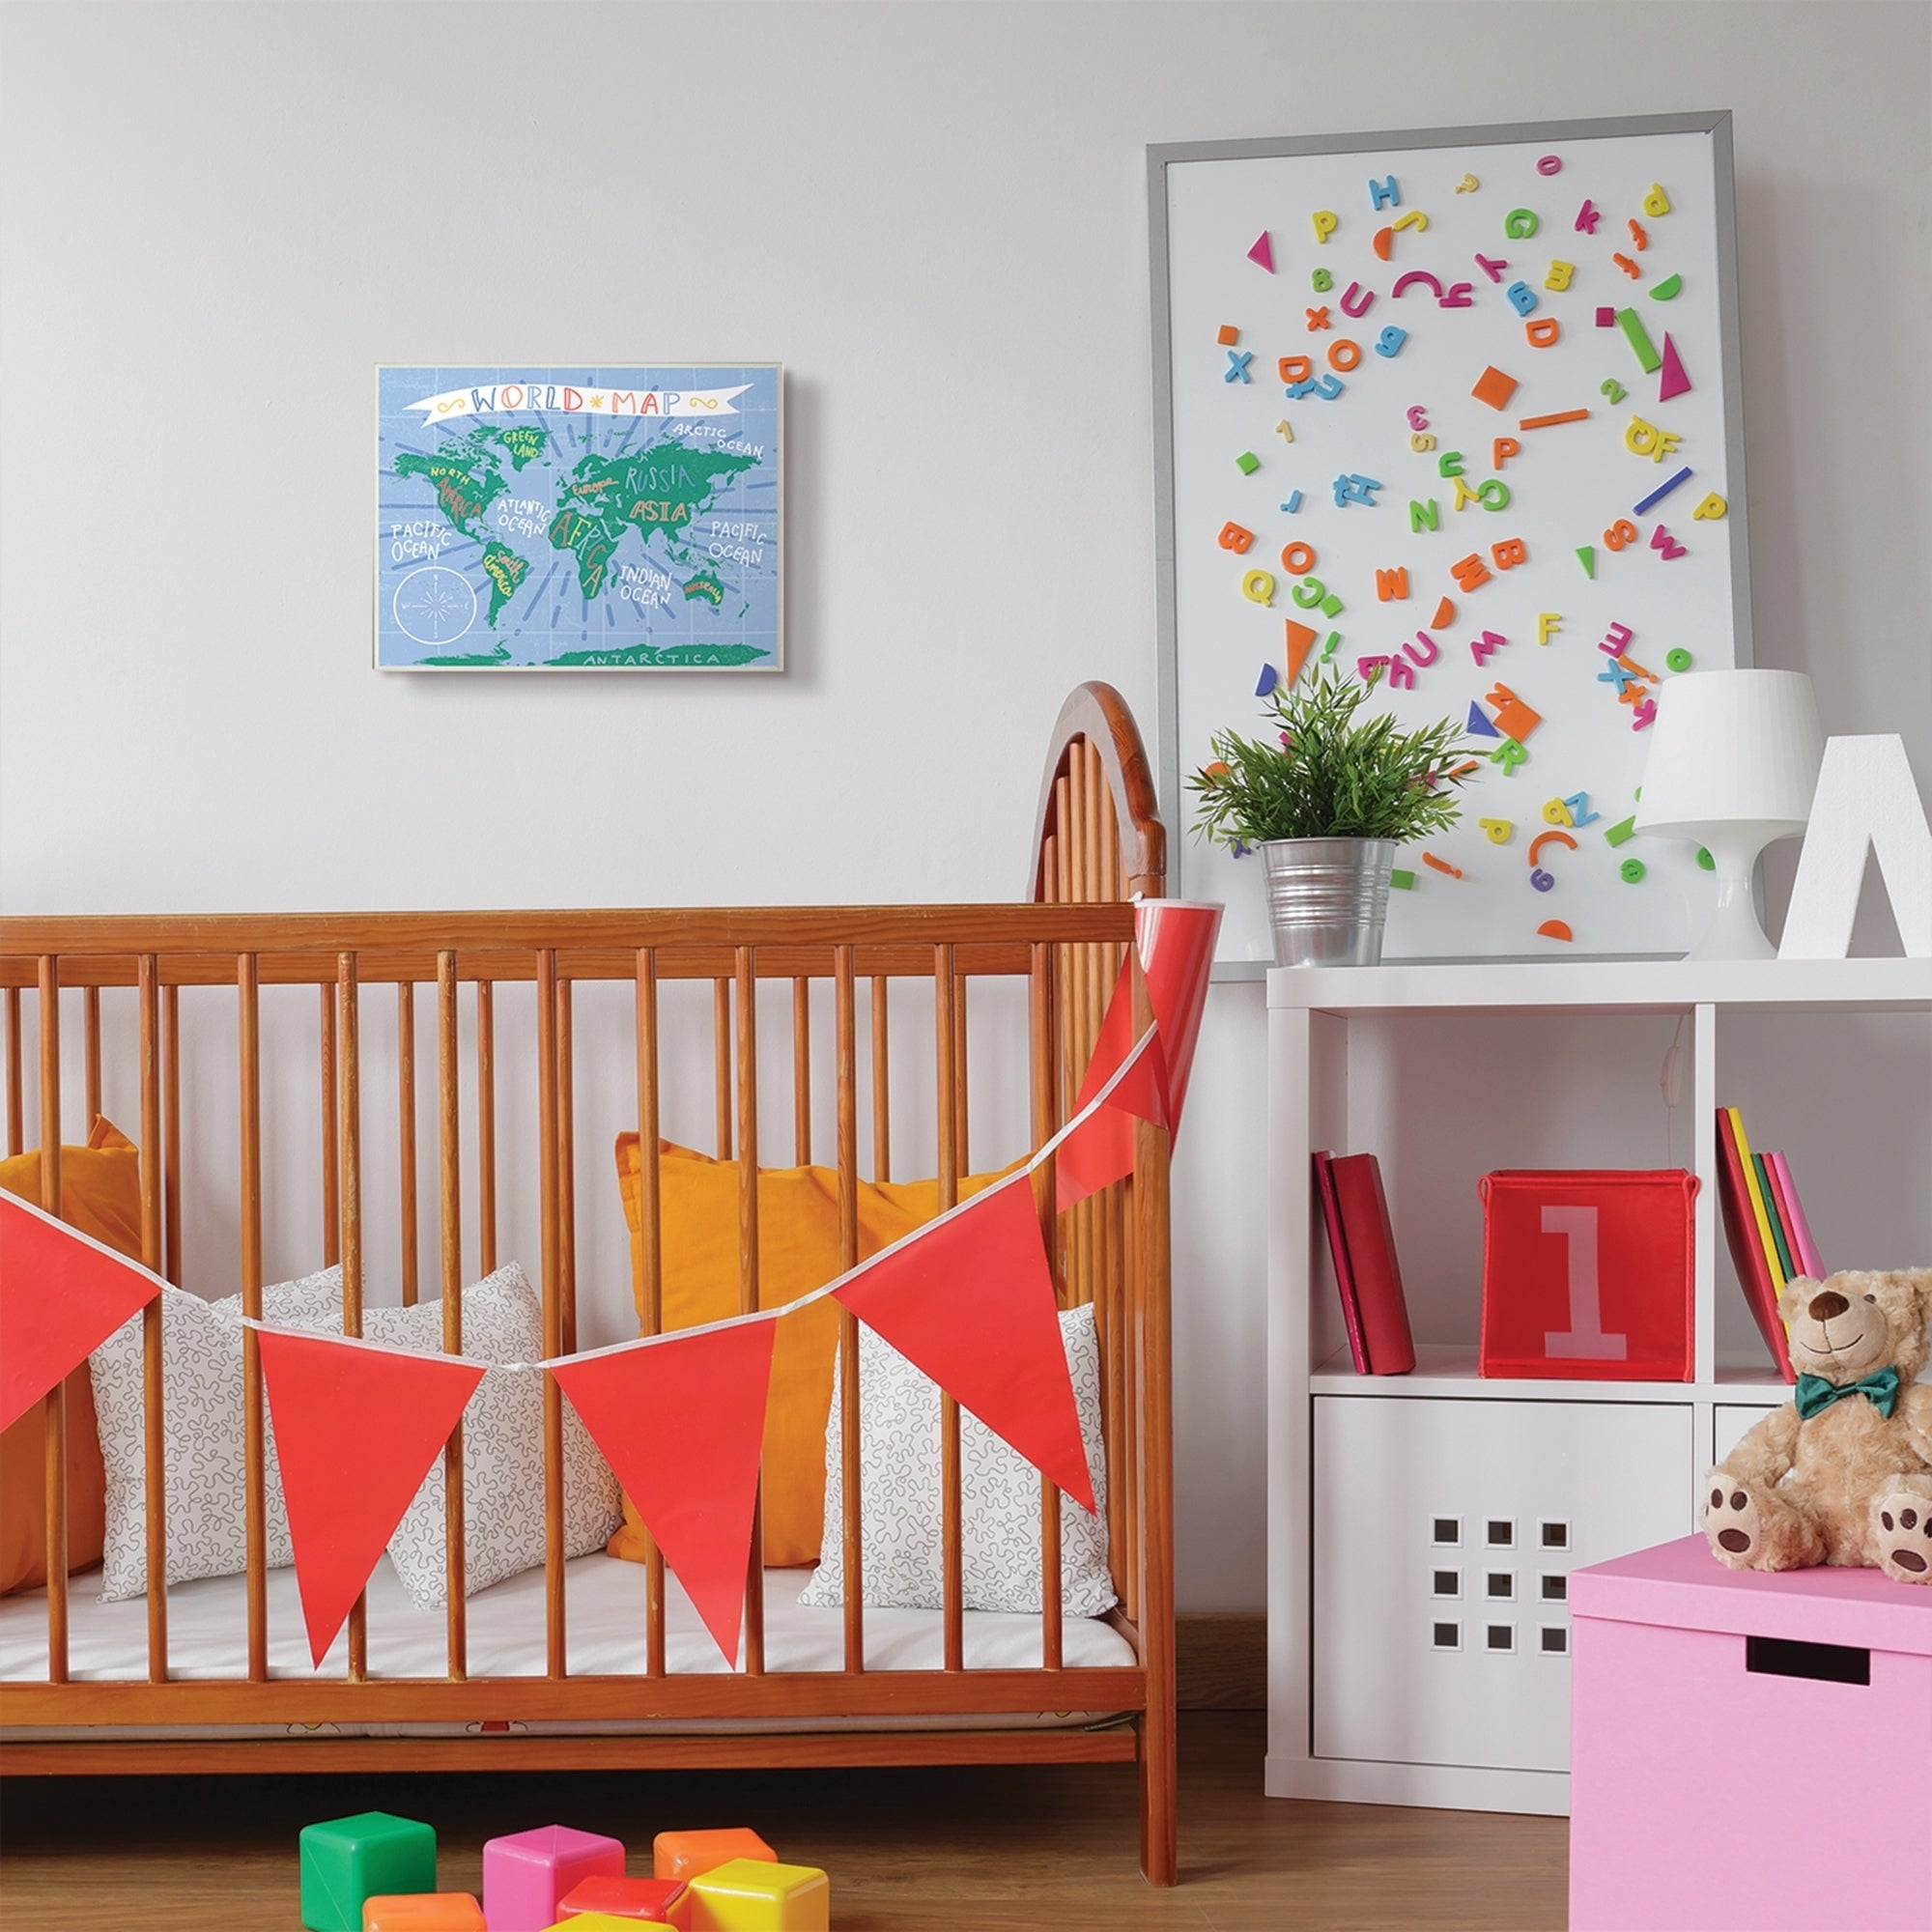 The Kids Room by Stupell Kids World Map Colorful Nursery Design,10x15,  Proudly Made in USA